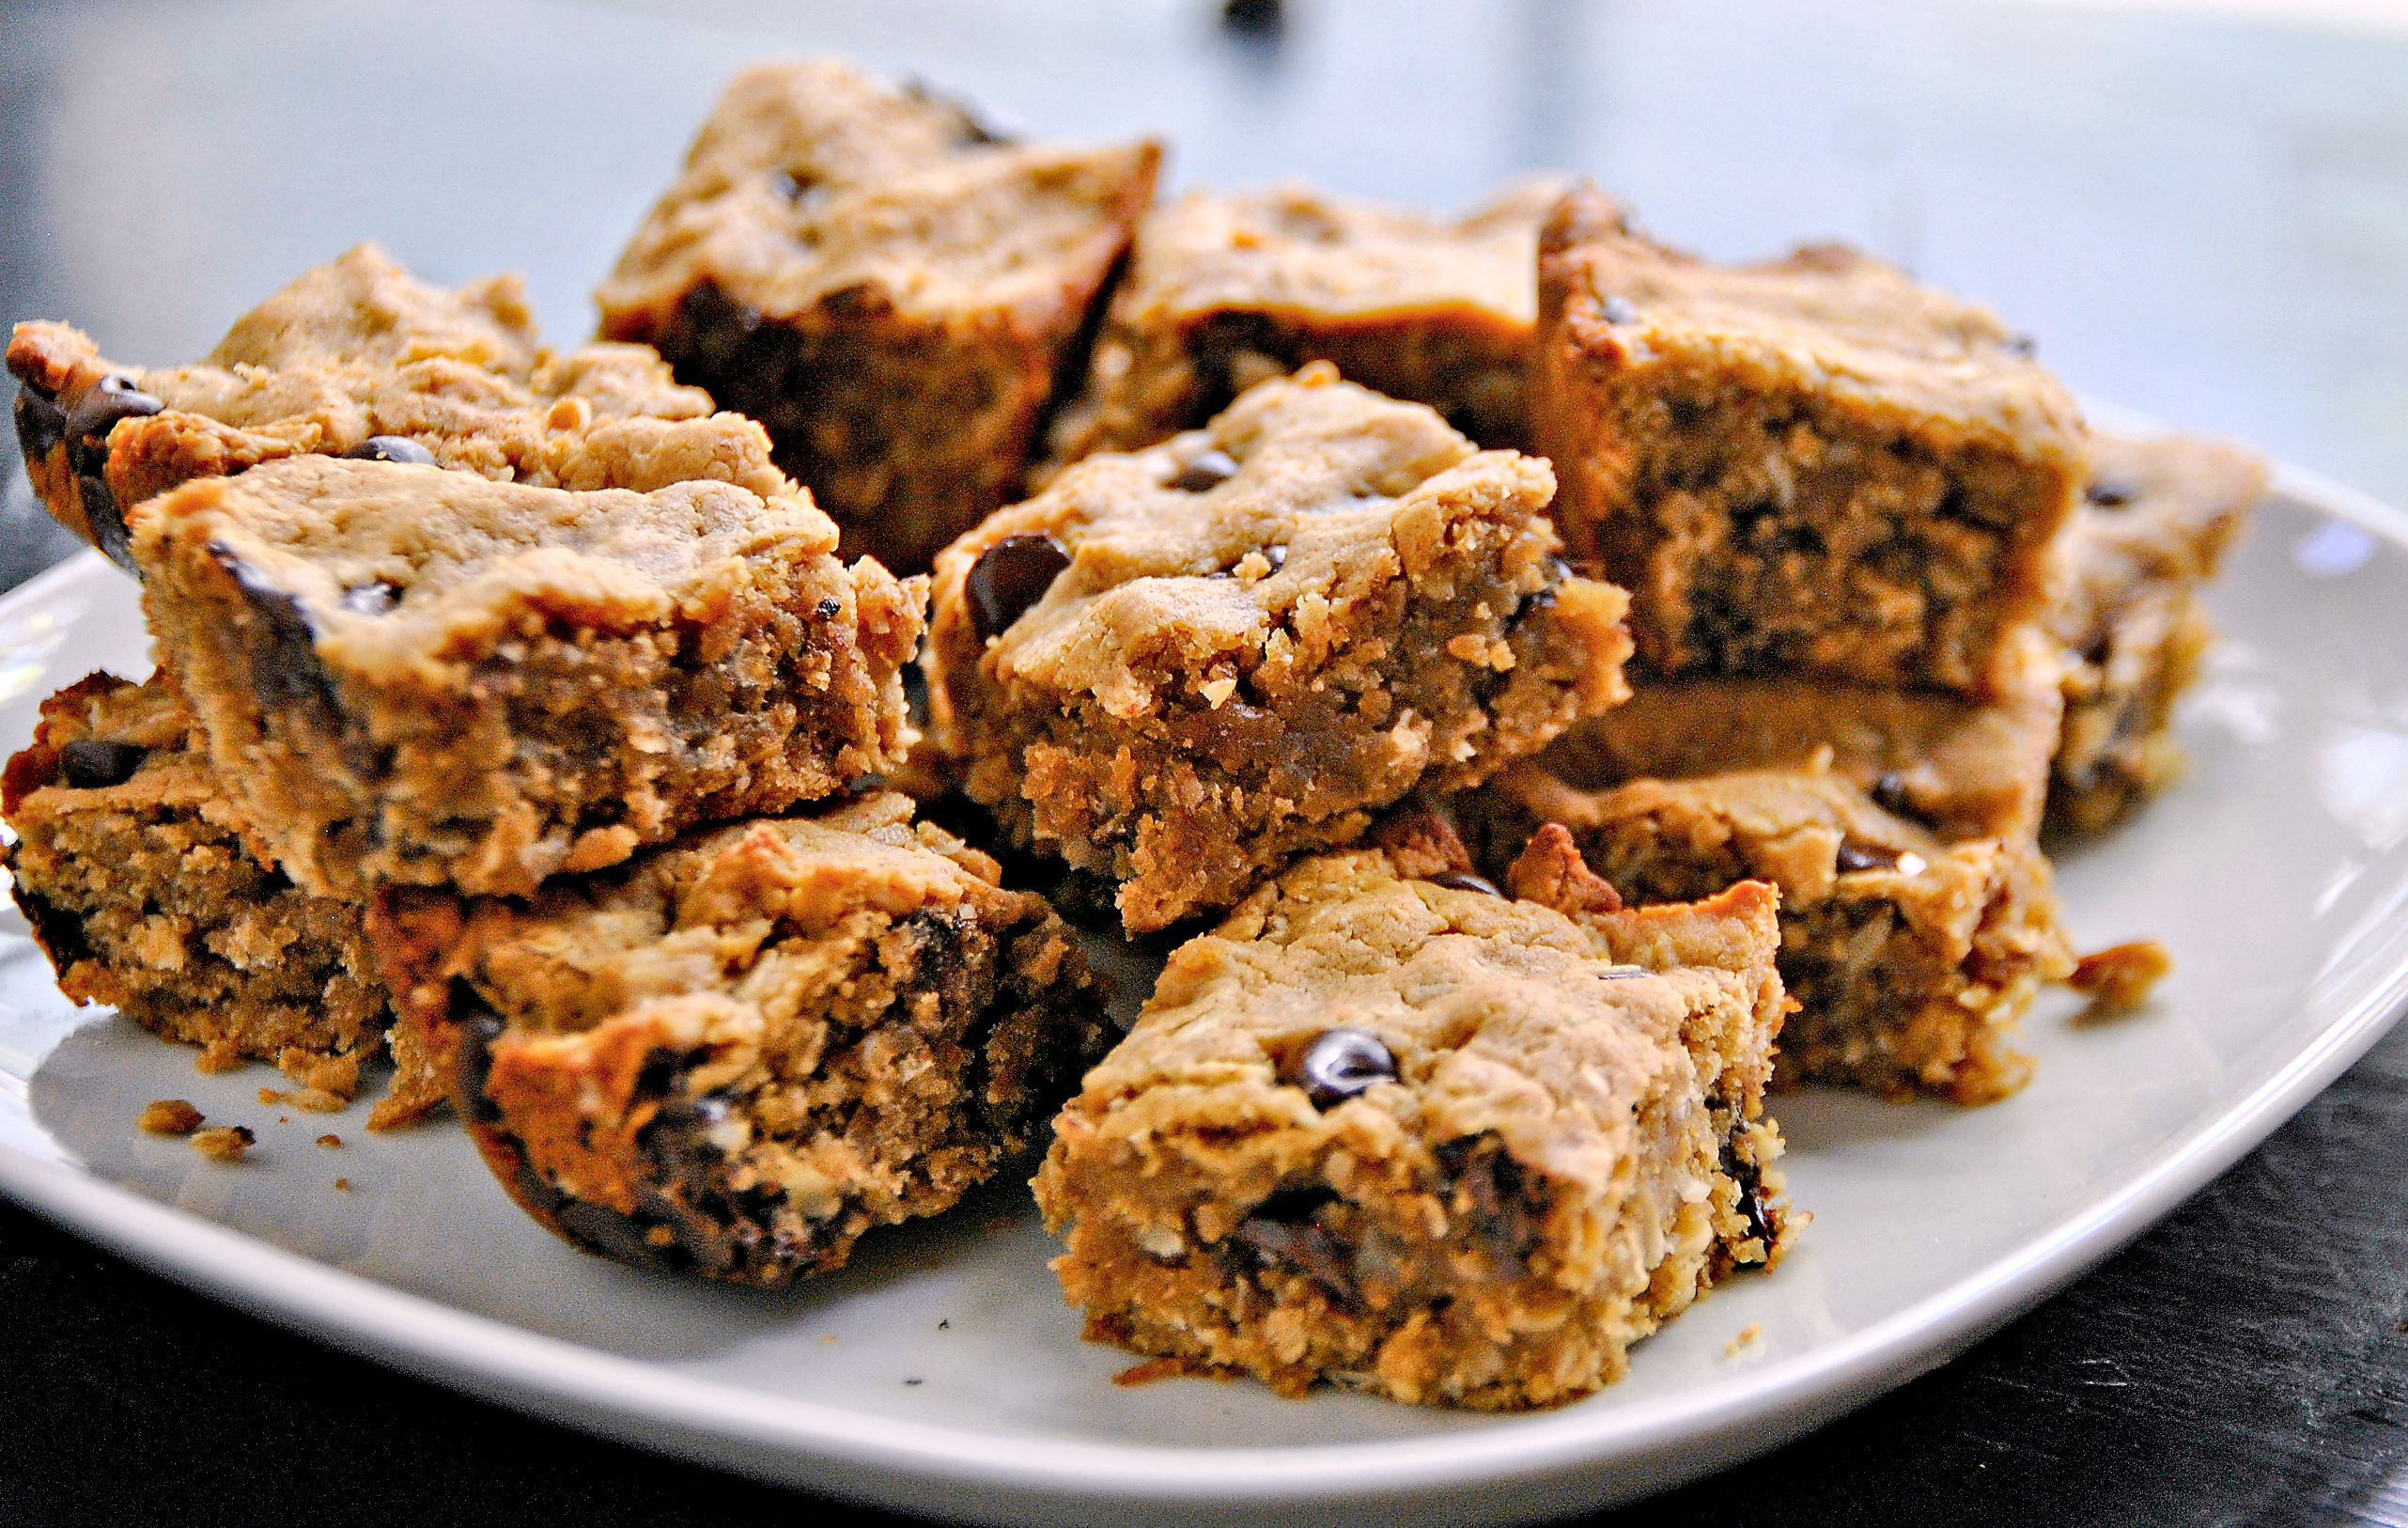 One good recipe: Peanut Butter Chocolate Chip Oatmeal Bars ...